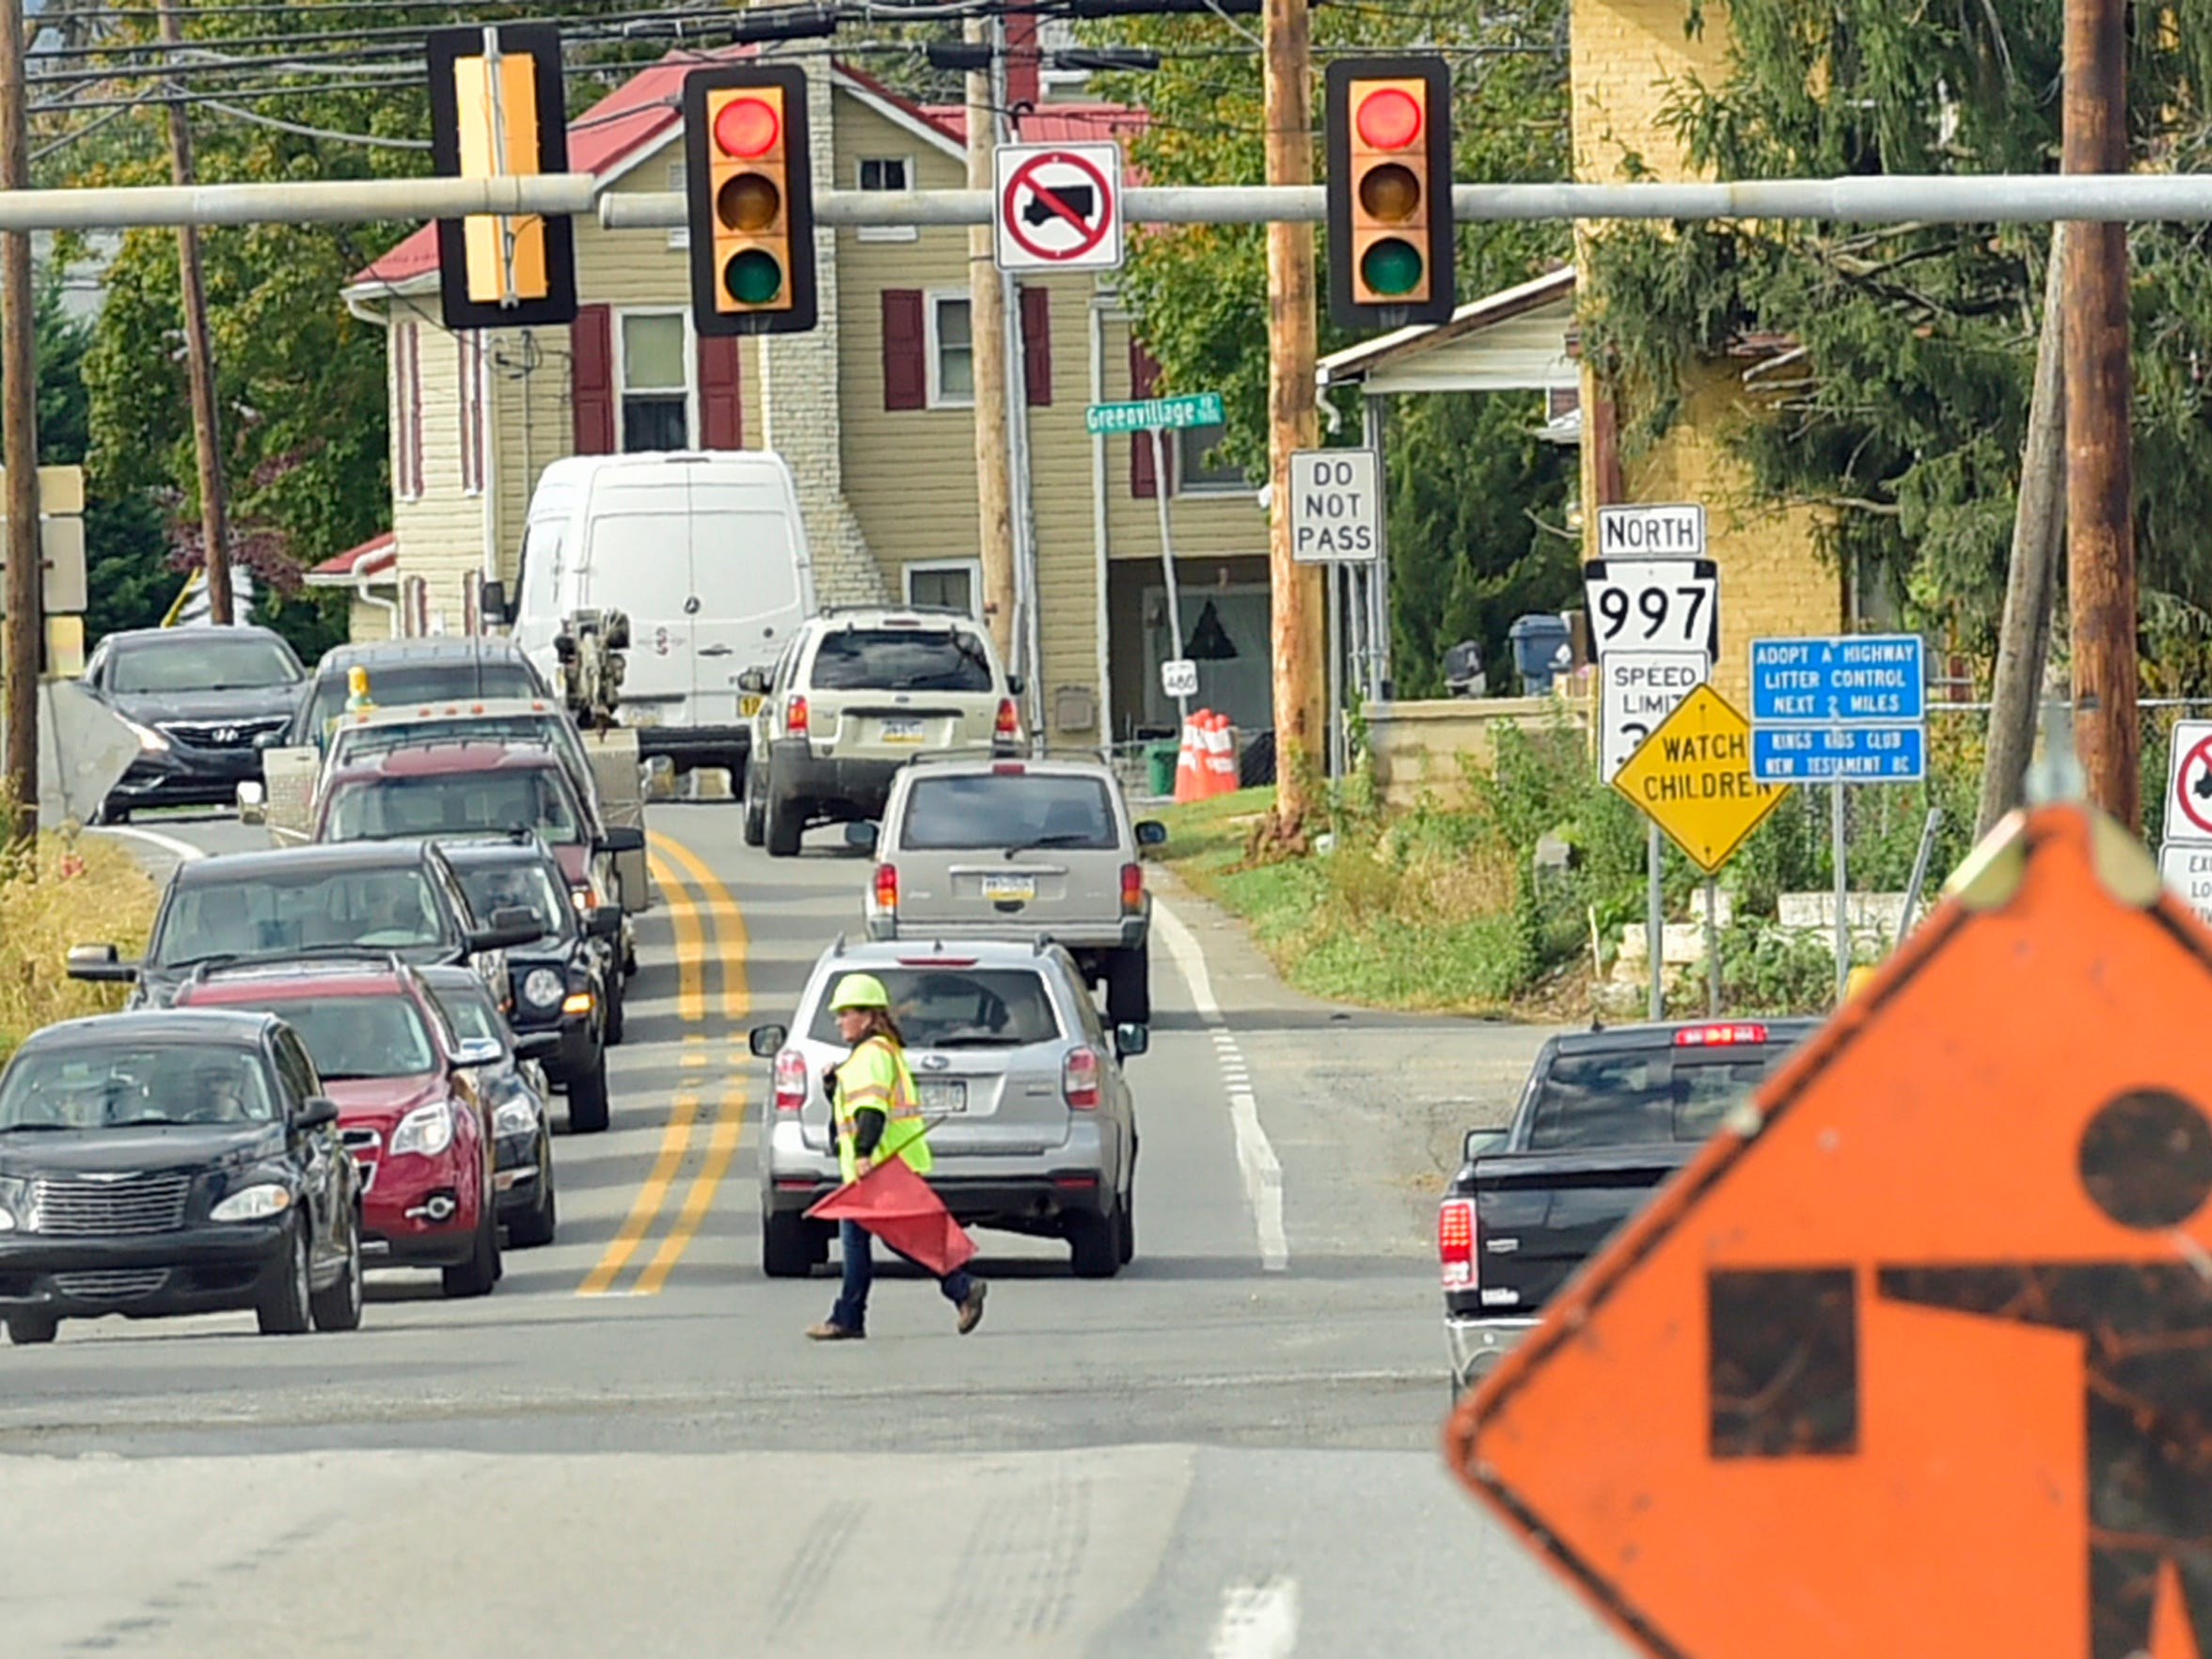 Traffic backs up on Pa. 997 at U.S. 11 in Greenvillage on Wednesday, Oct. 25, as road construction continues in the area. A flagger replaces traffic lights in the area during afternoon rush hour.